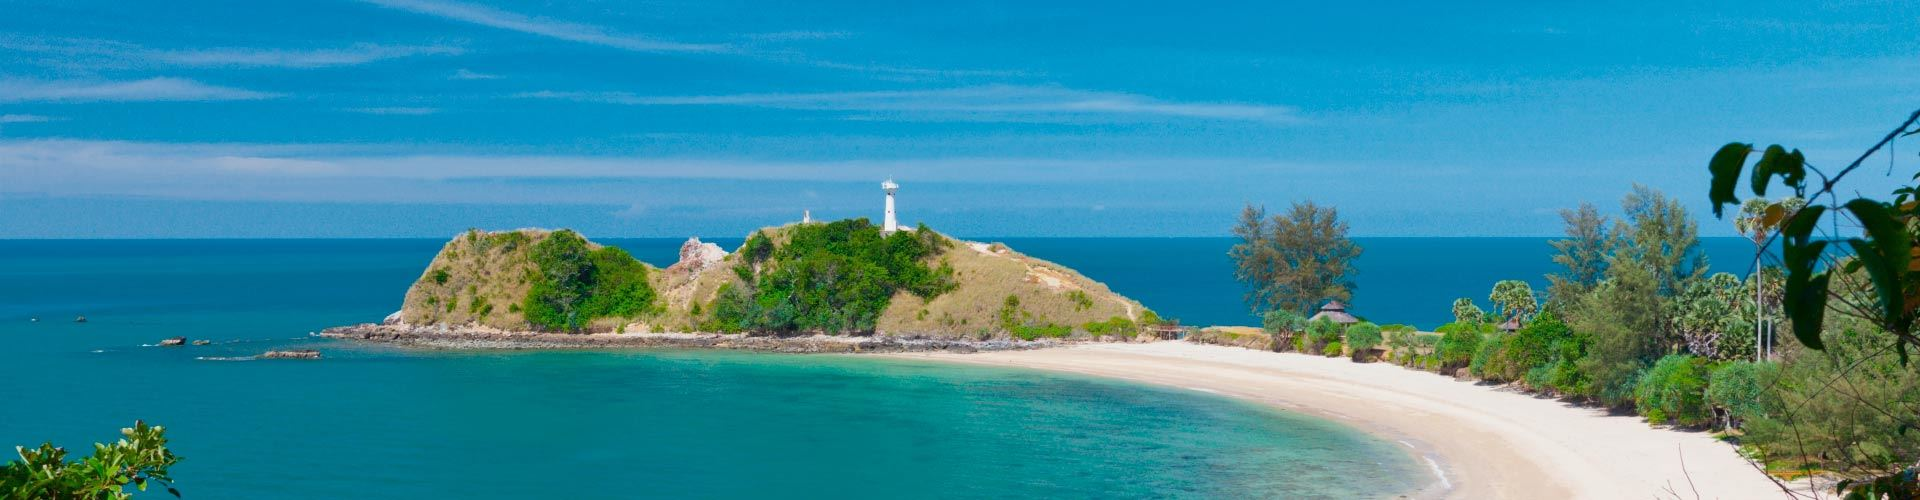 Koh-Lanta-lighthouse.jpg